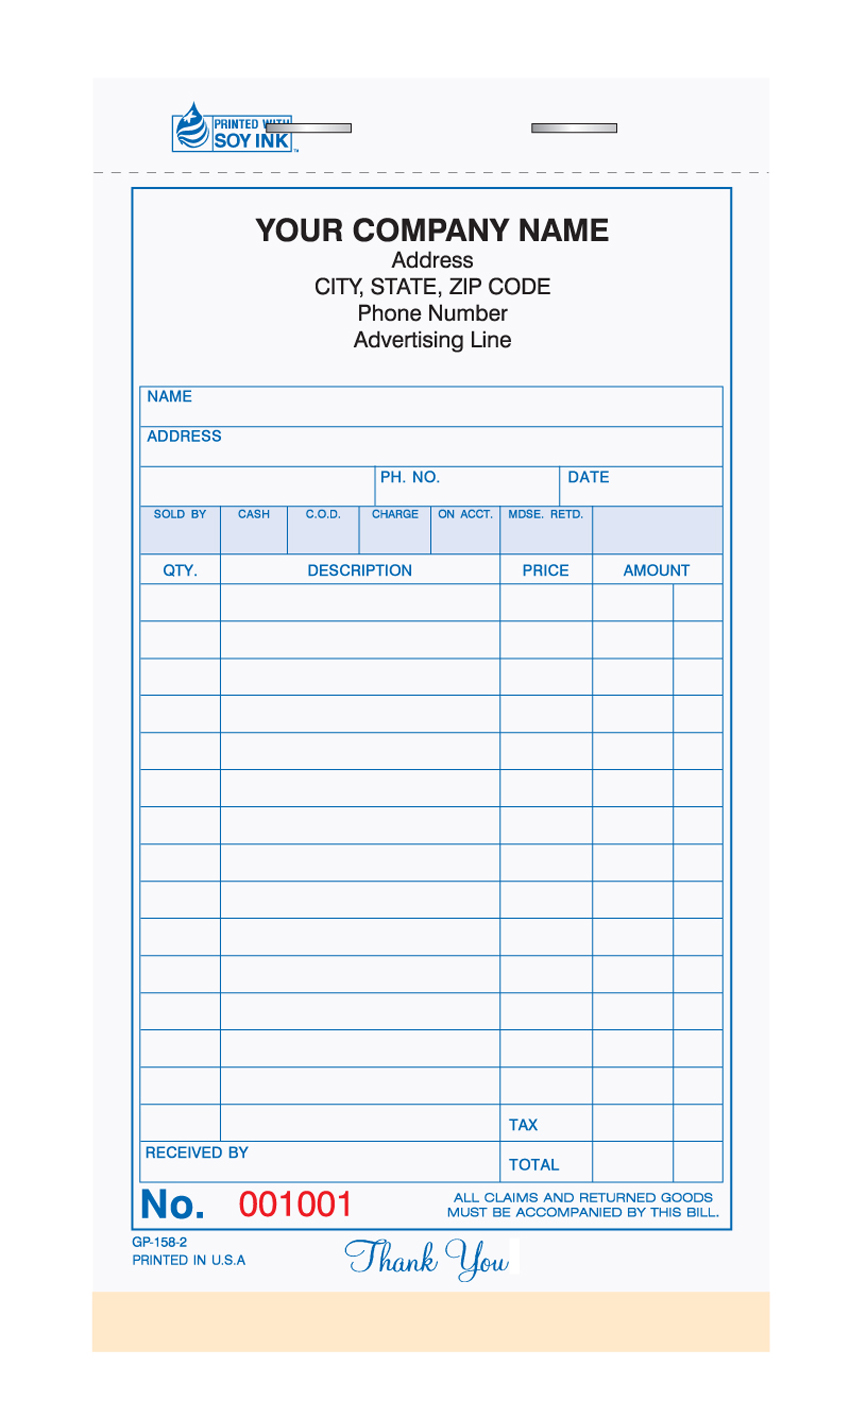 General Sales Booked Form - GP-158-3 Part - 4.25 x 7